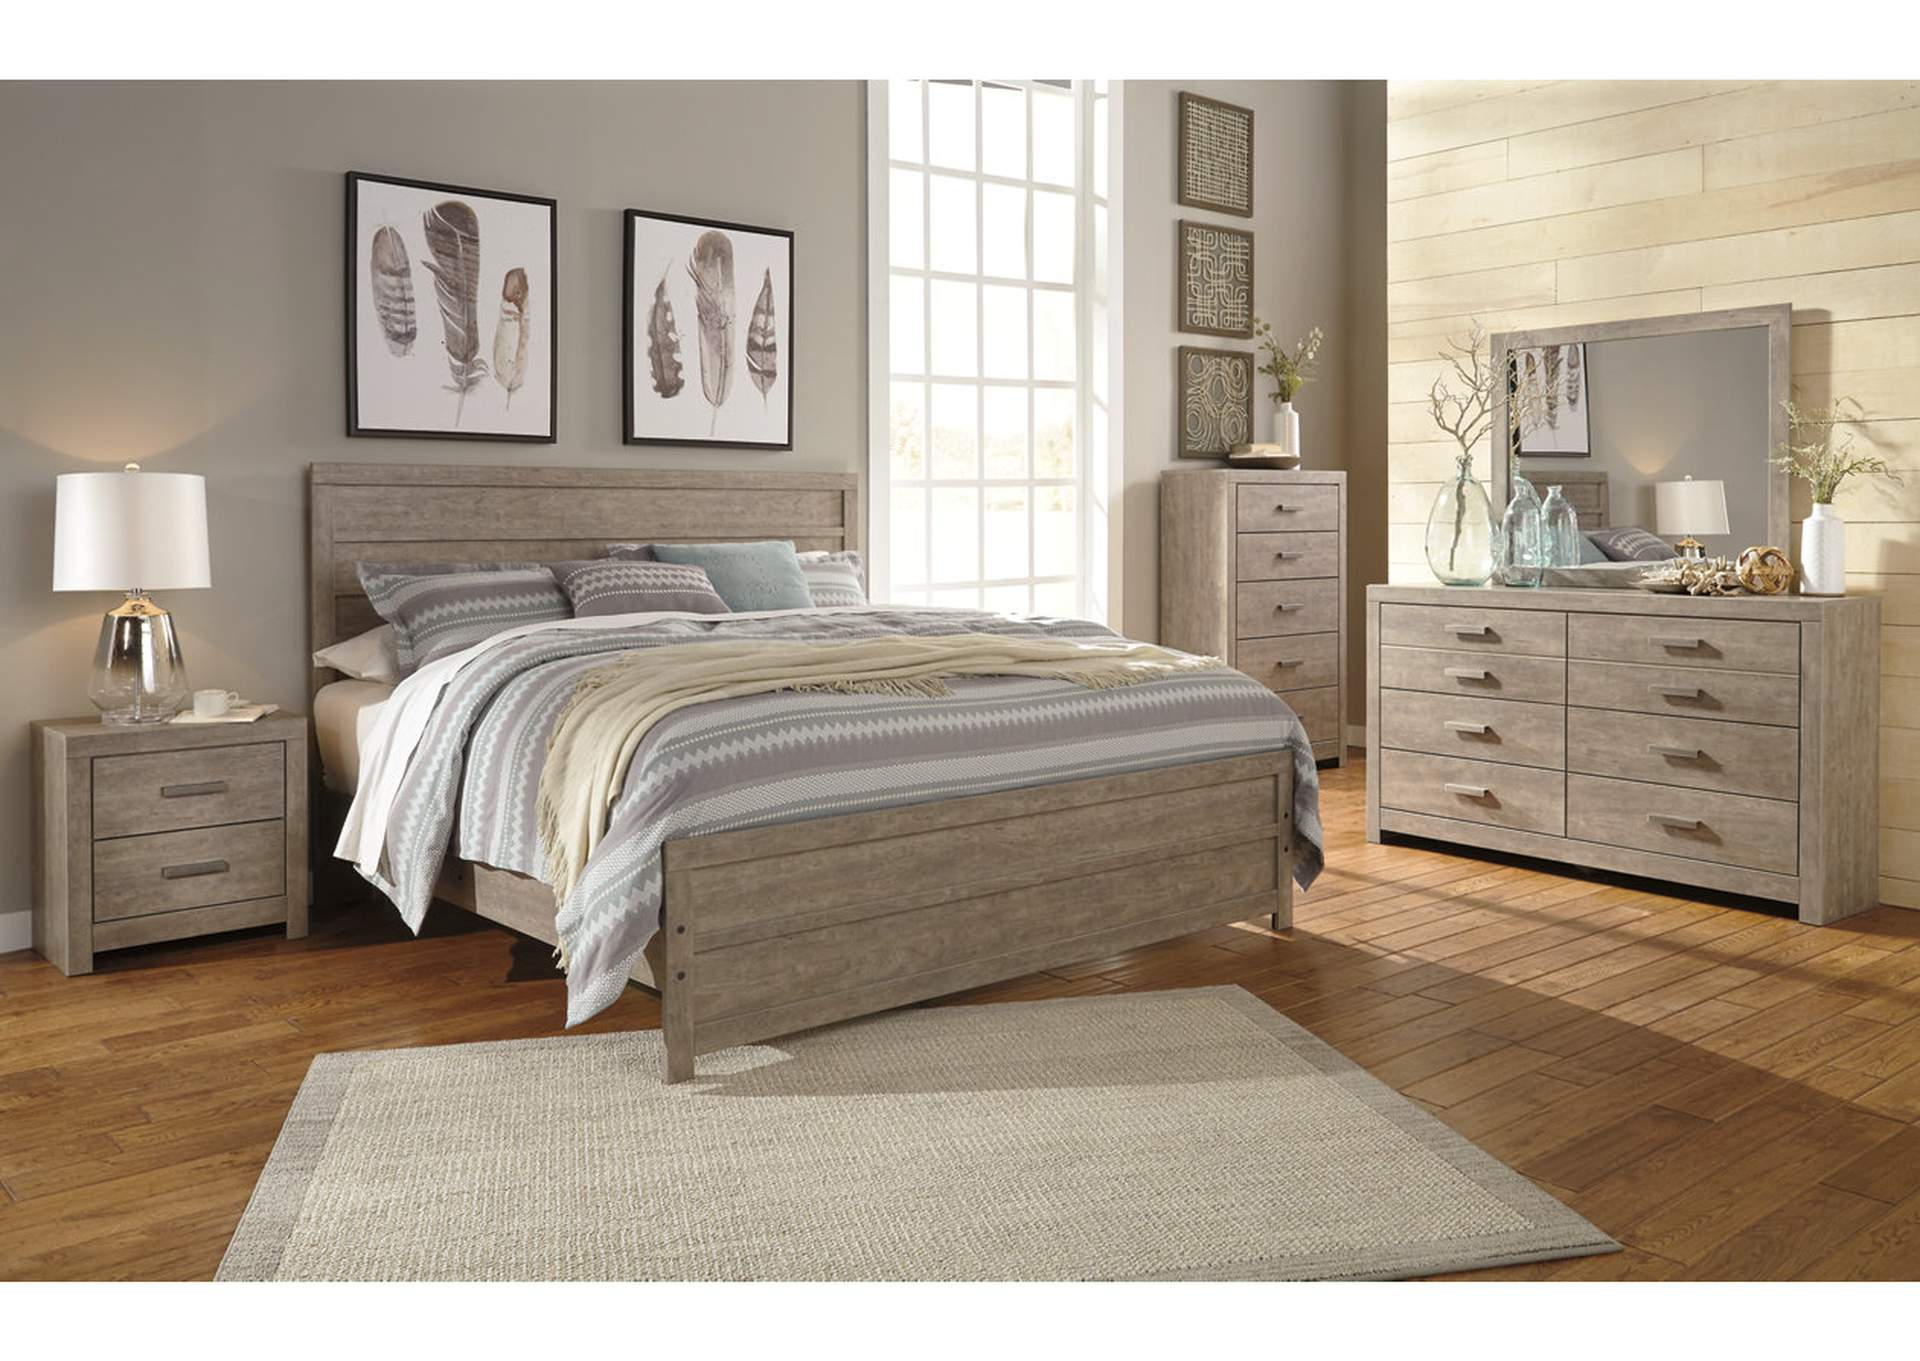 Culverbach Gray Queen Panel Bed w/Dresser, Mirror, Drawer Chest & Nightstand,Signature Design By Ashley